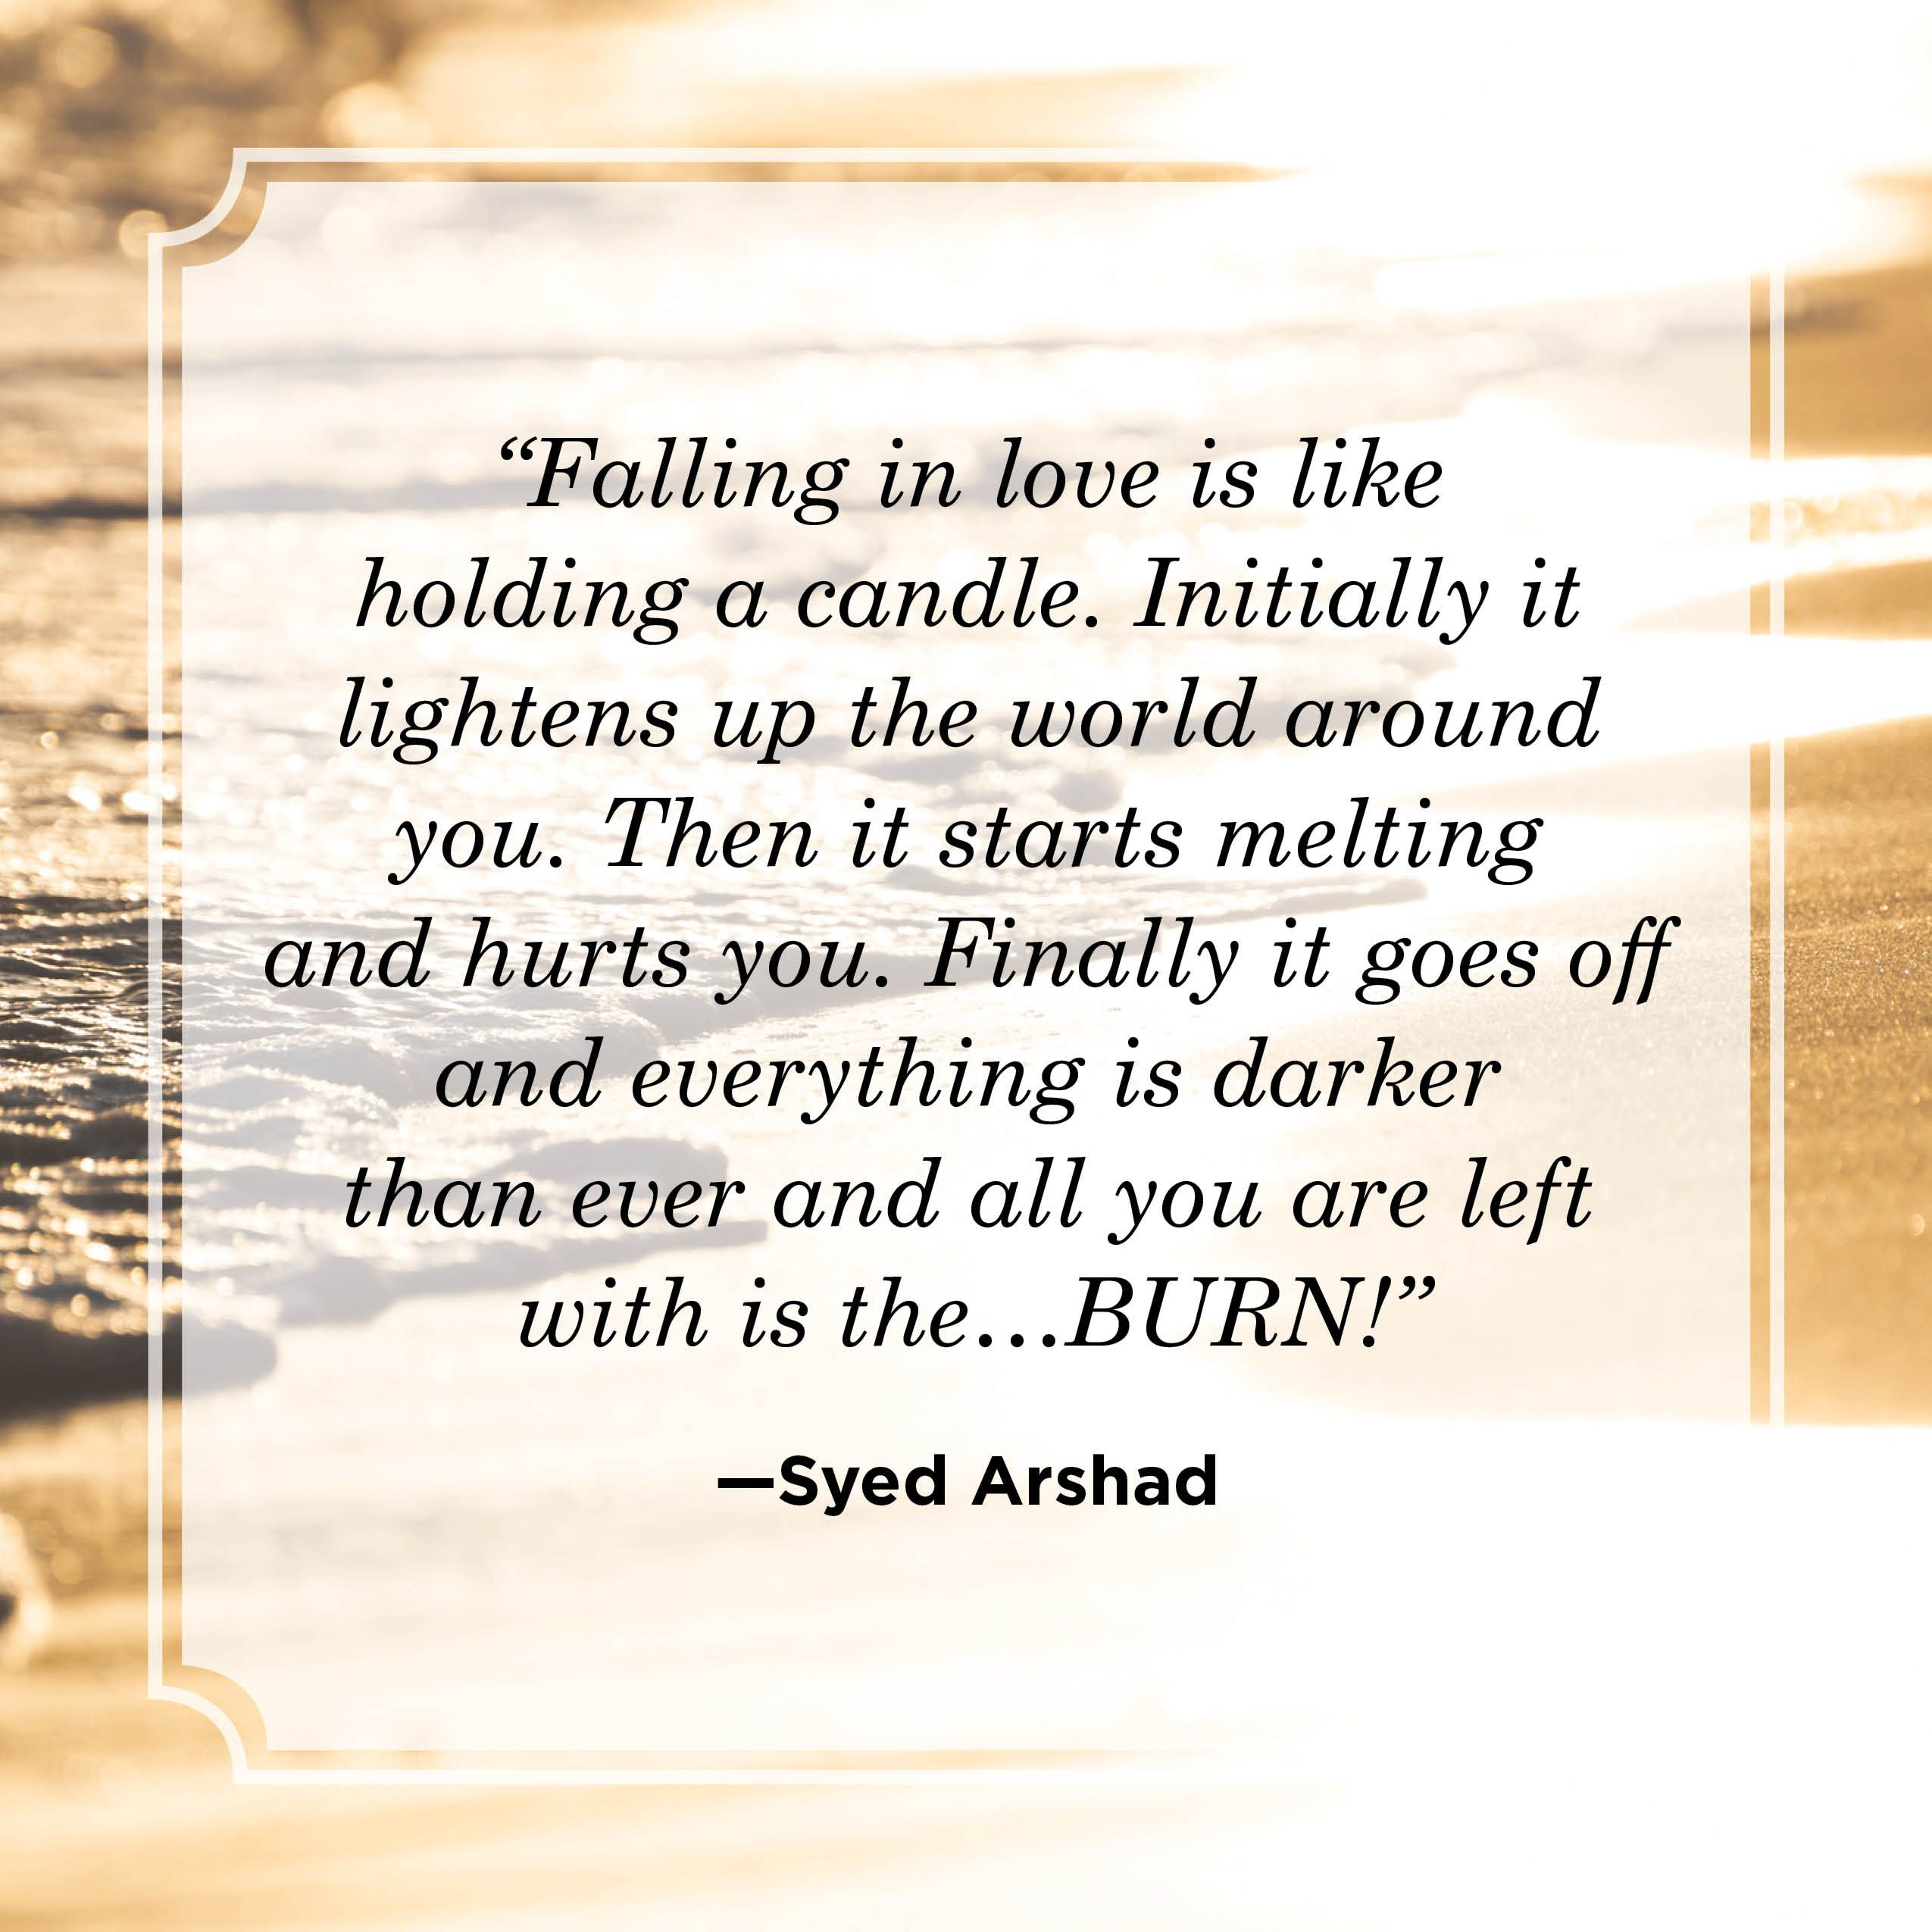 10 Sad Love Quotes - Sad Quotes About Love and Pain